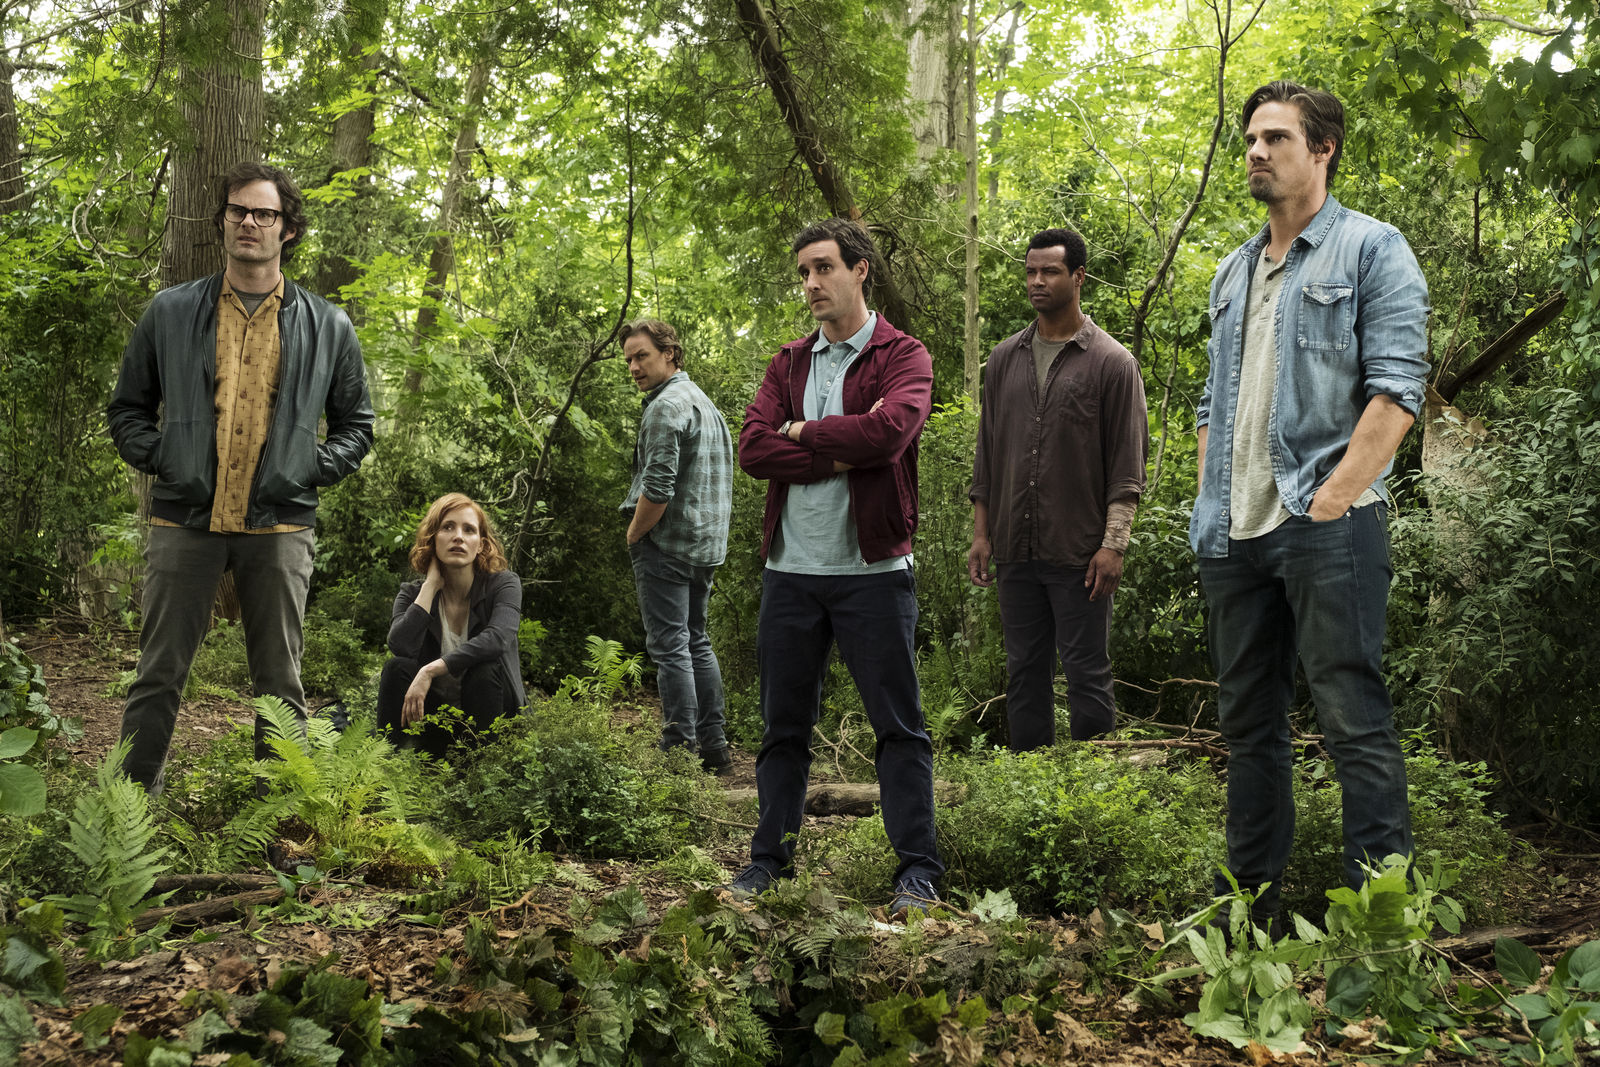 "(L-r) BILL HADER as Richie Tozier, JESSICA CHASTAIN as Beverly Marsh, JAMES MCAVOY as Bill Denbrough, JAMES RANSONE as Eddie Kaspbrak, ISAIAH MUSTAFA as Mike Hanlon, and JAY RYAN as Ben Hascomb in New Line Cinema's horror thriller ""IT CHAPTER TWO,"" a Warner Bros. Pictures release. (Photo: Warner Bros.){ }"